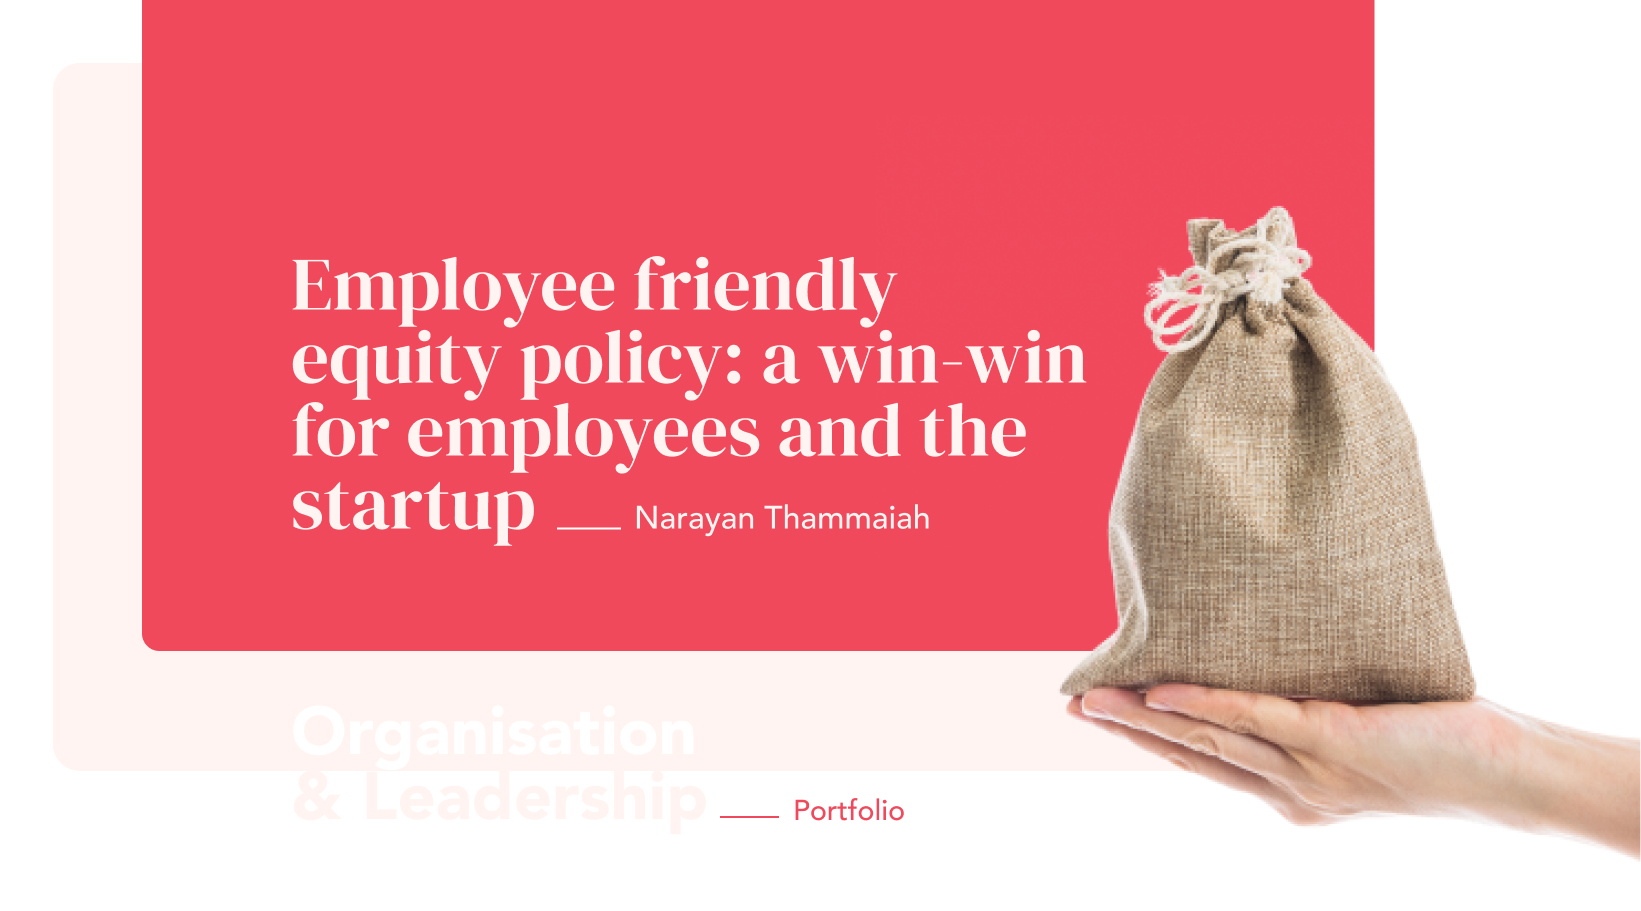 Employee friendly equity policy: a win-win for employees and the startup